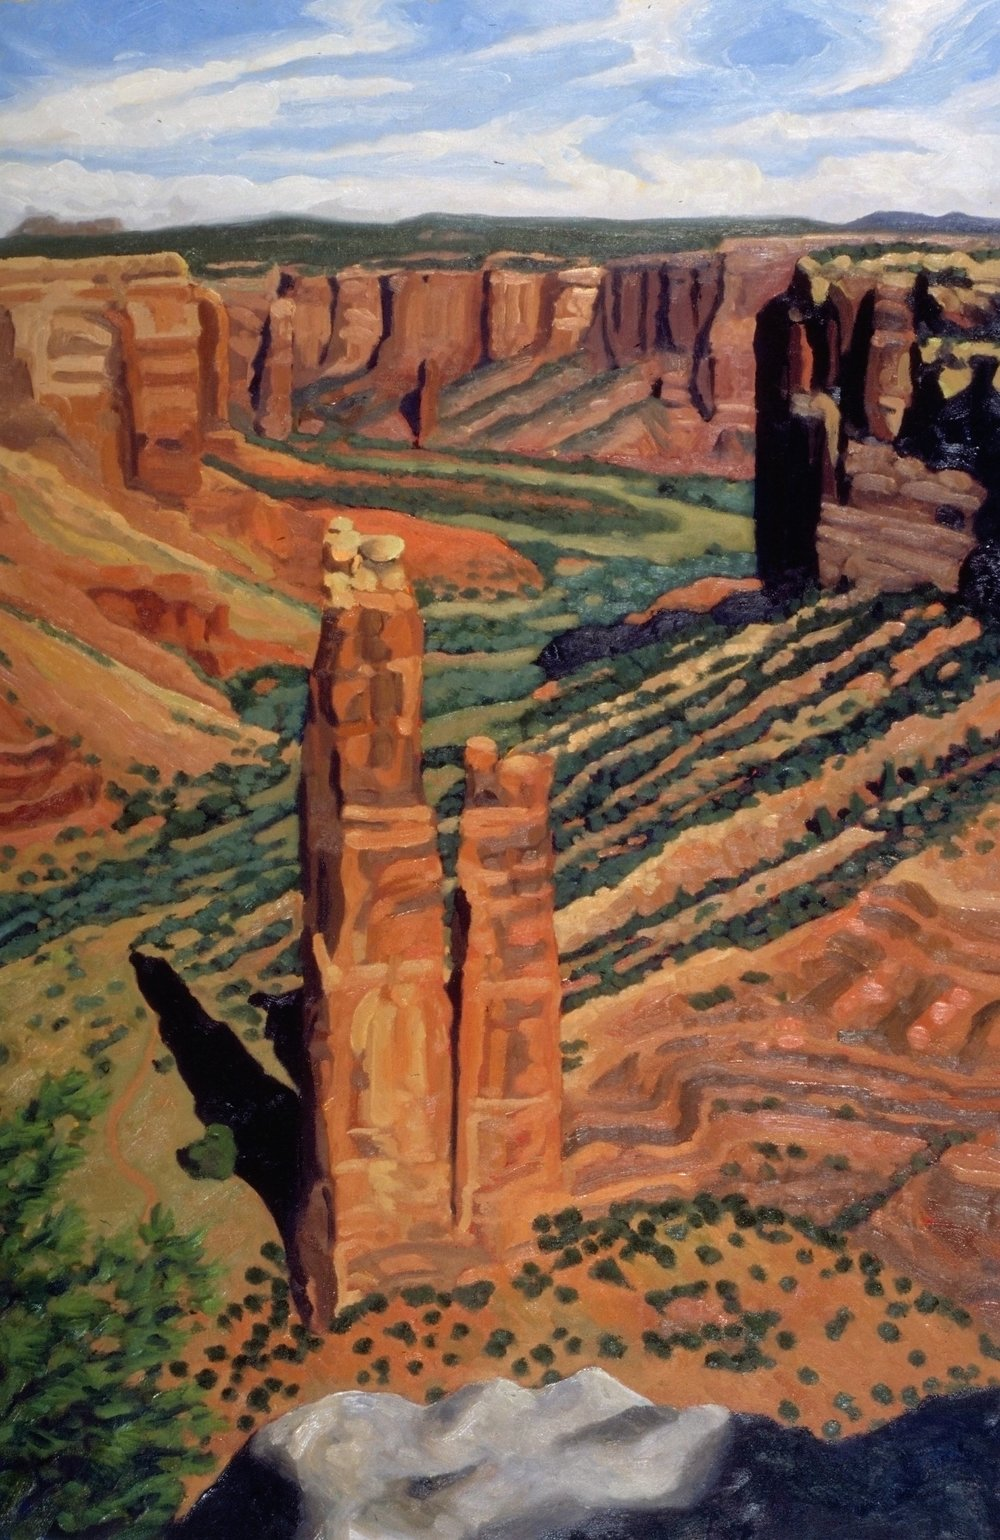 Spider Rock, Canyon de Chelley  30x20     Oil on Panel      2002